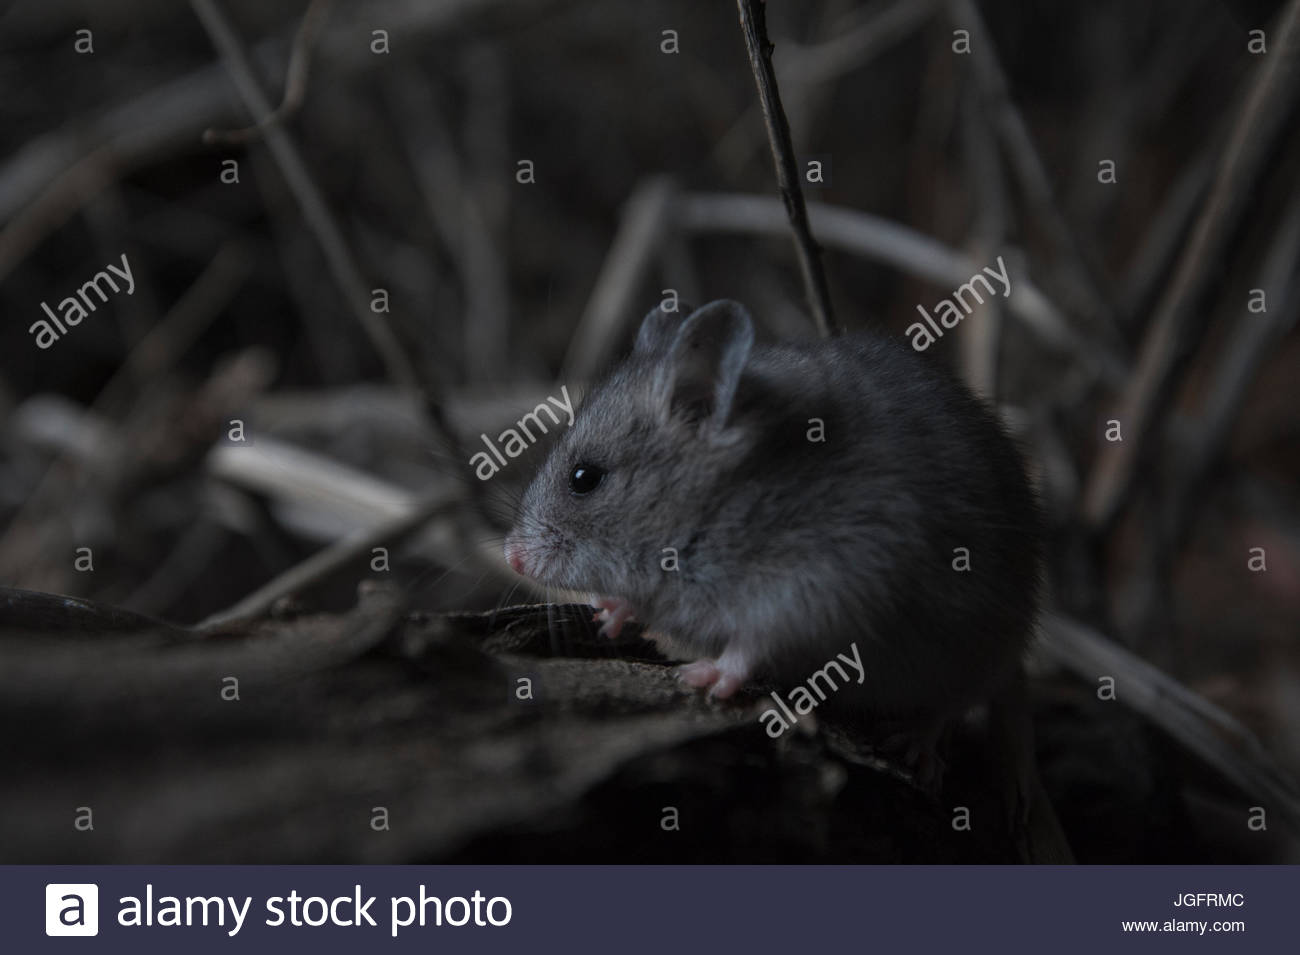 A Gobi vole in Mongolia's Great Gobi Strictly Protected Area. - Stock Image